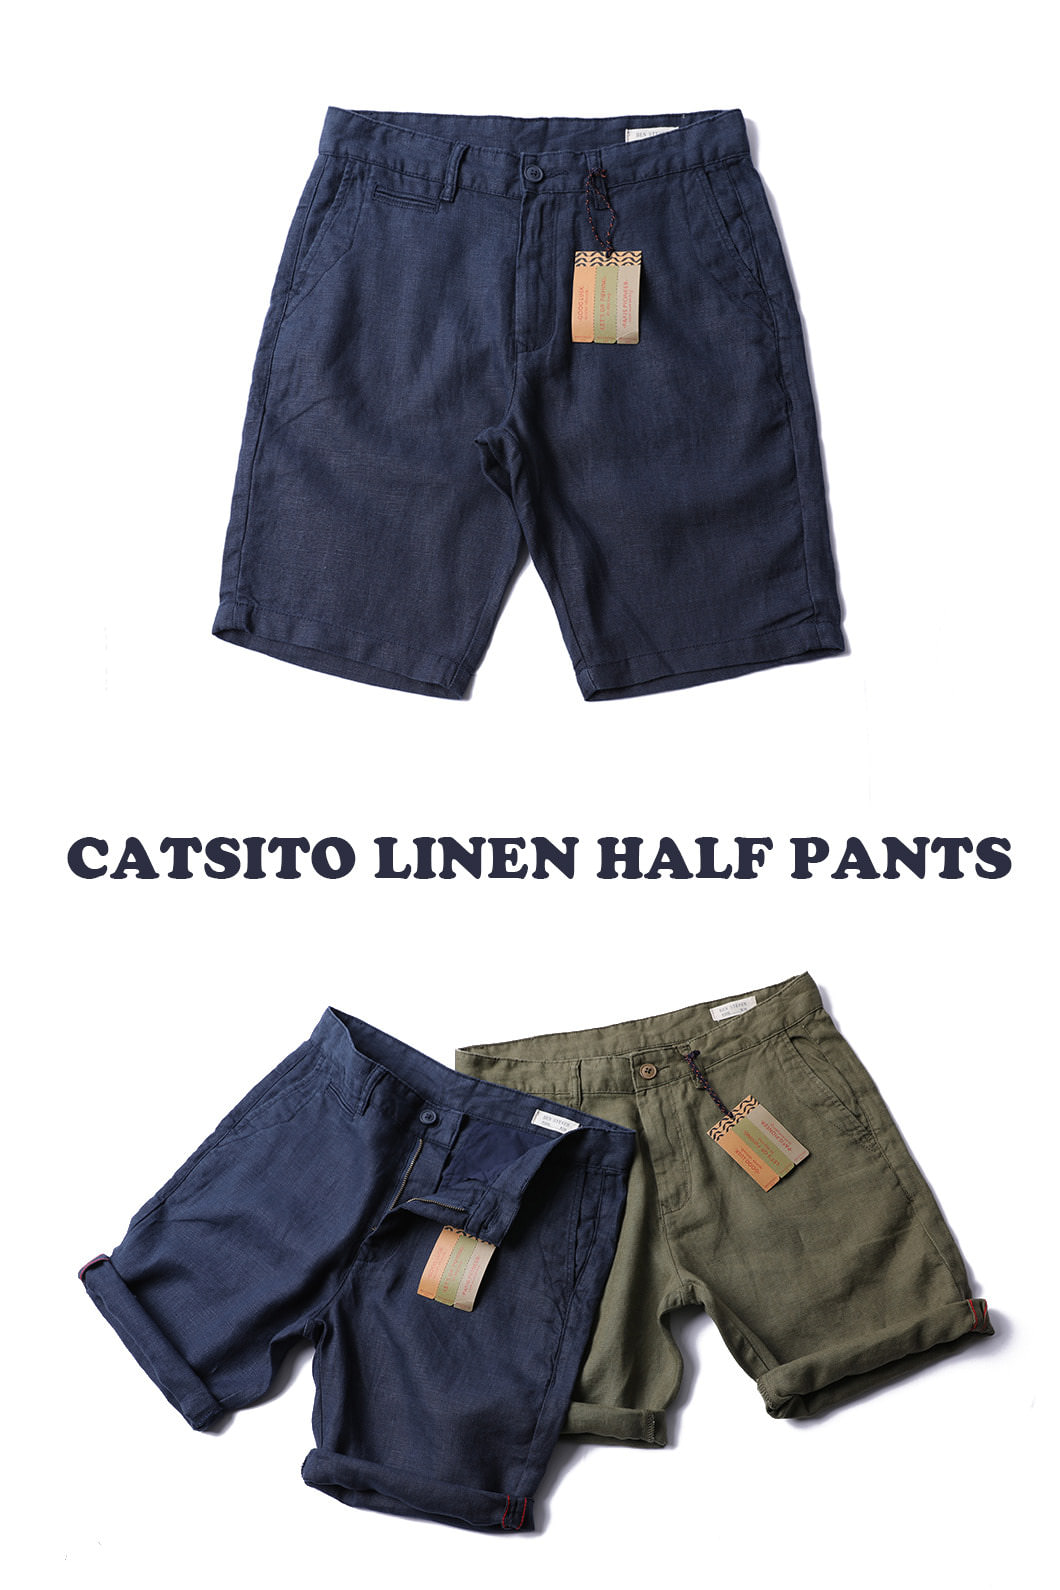 CATSITO LINEN HALF PANTS-2COLOR수입한정제품